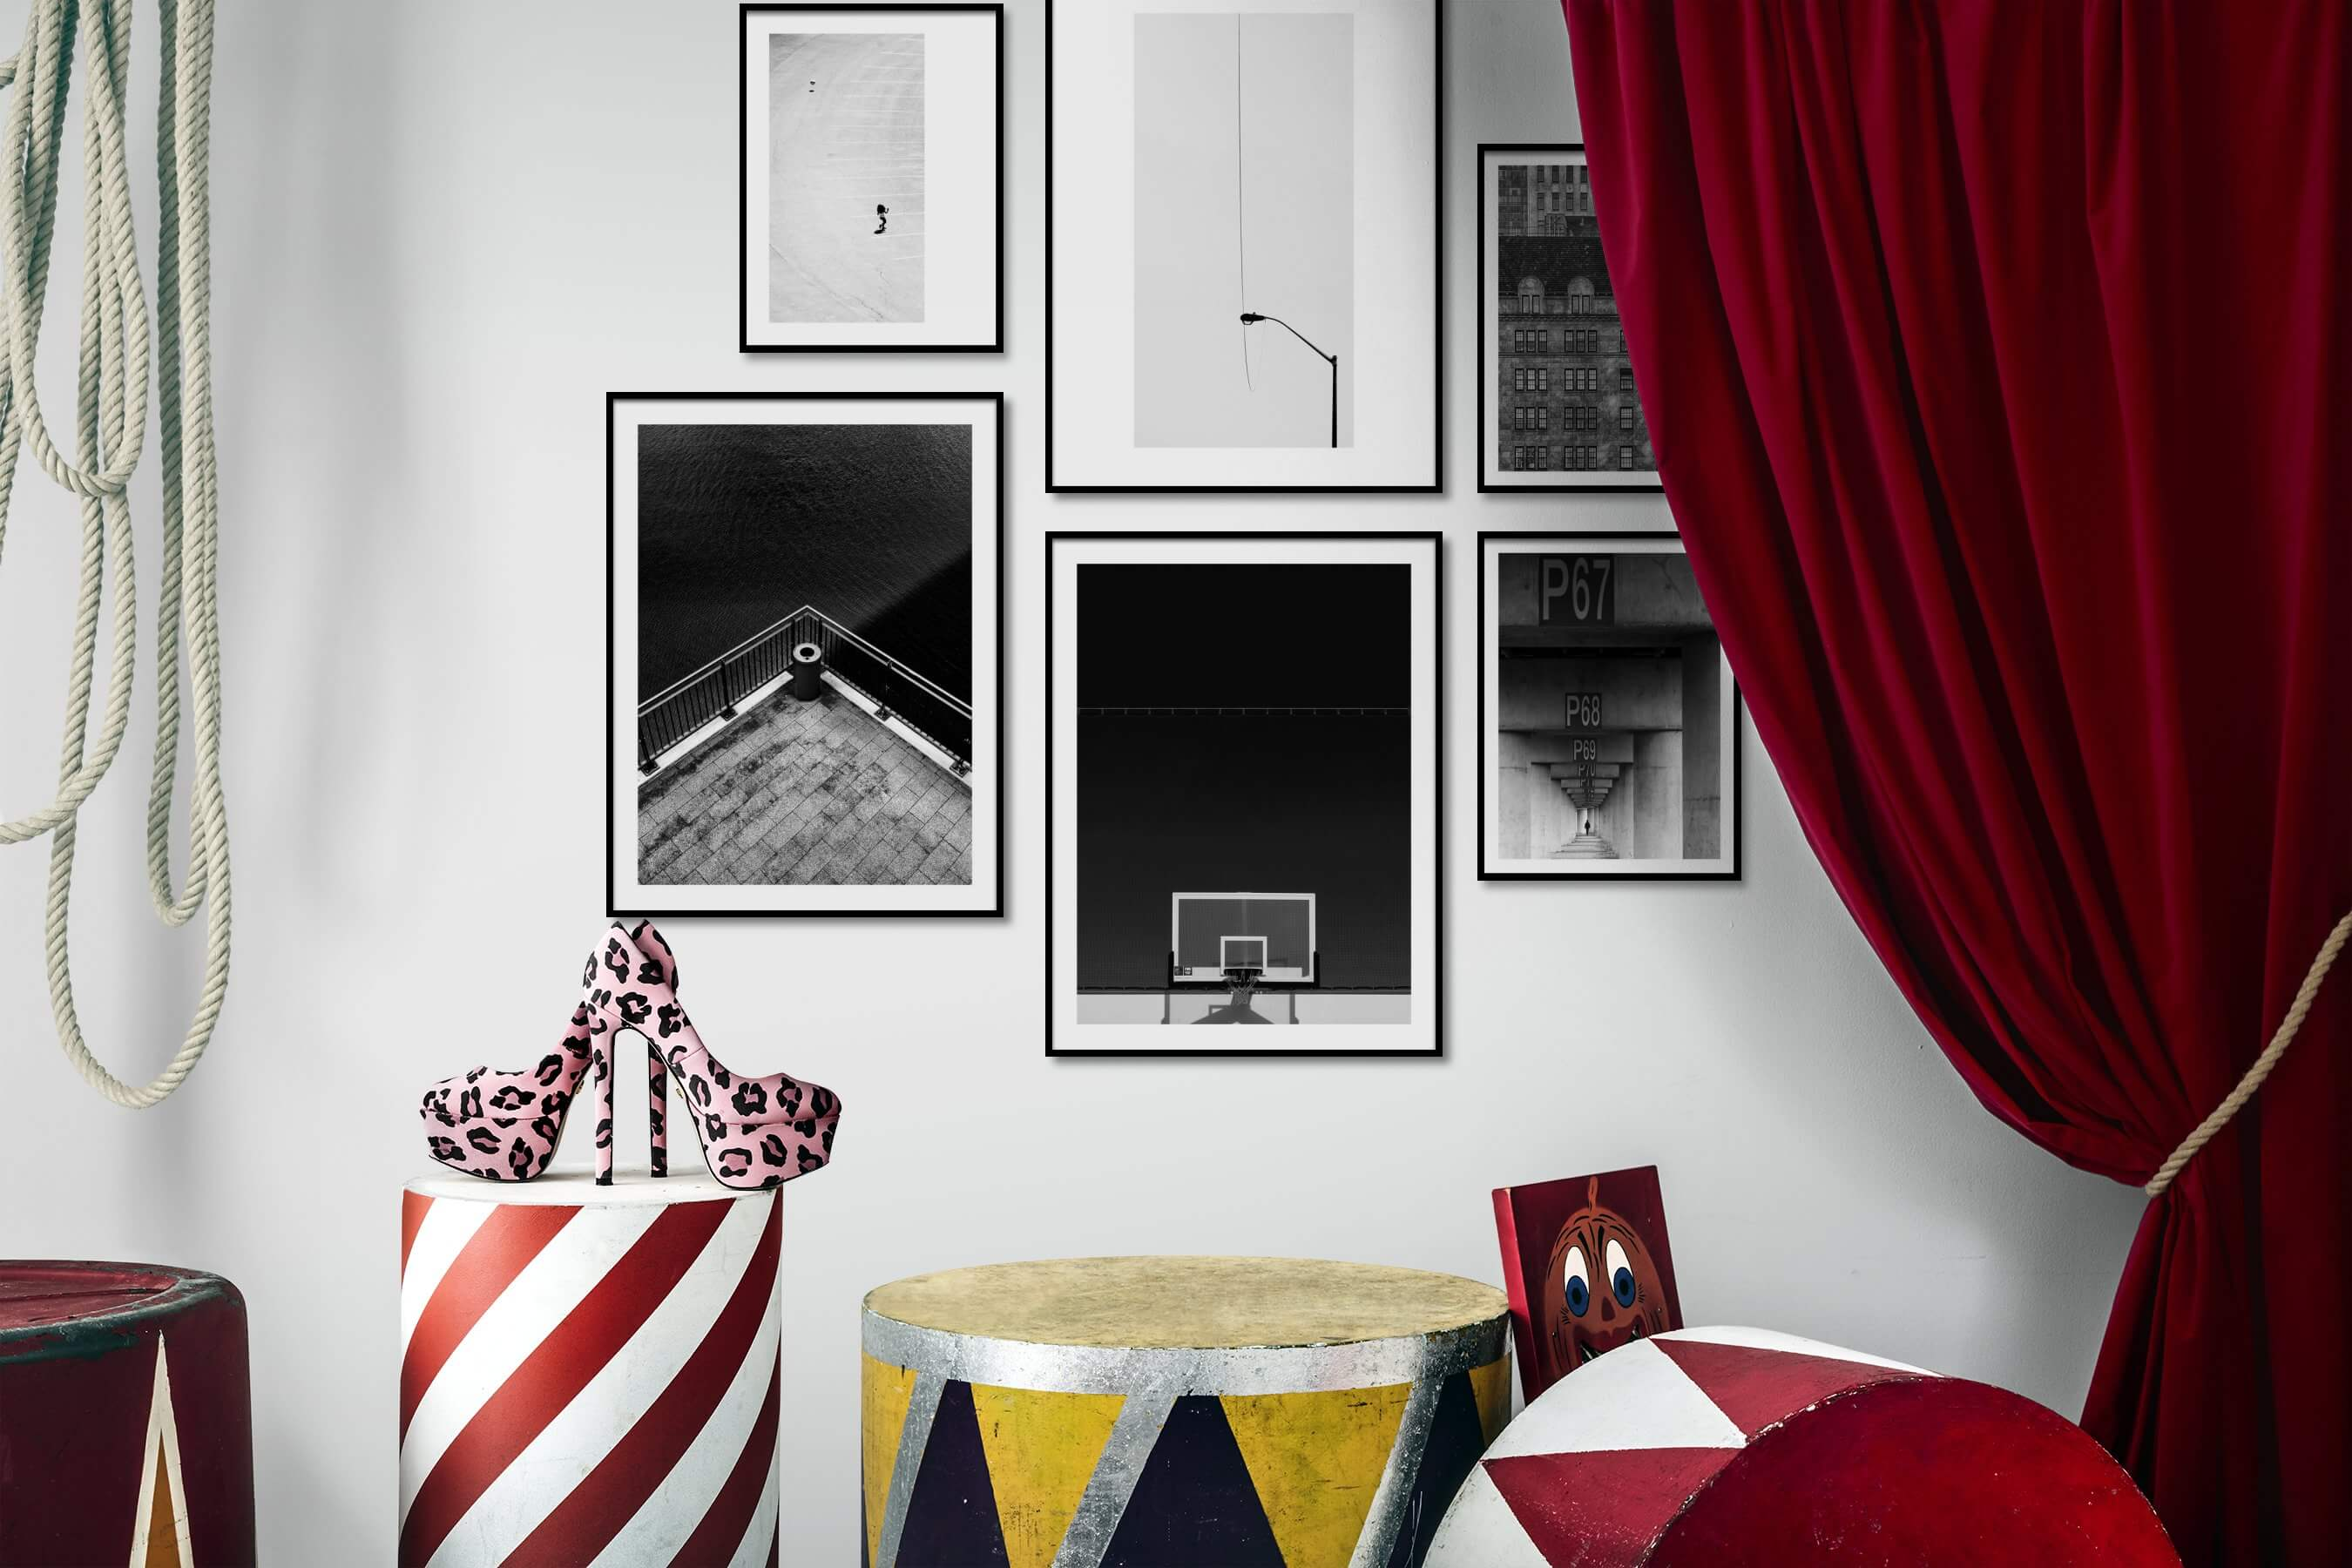 Gallery wall idea with six framed pictures arranged on a wall depicting Black & White, For the Minimalist, City Life, Beach & Water, For the Maximalist, Americana, and For the Moderate